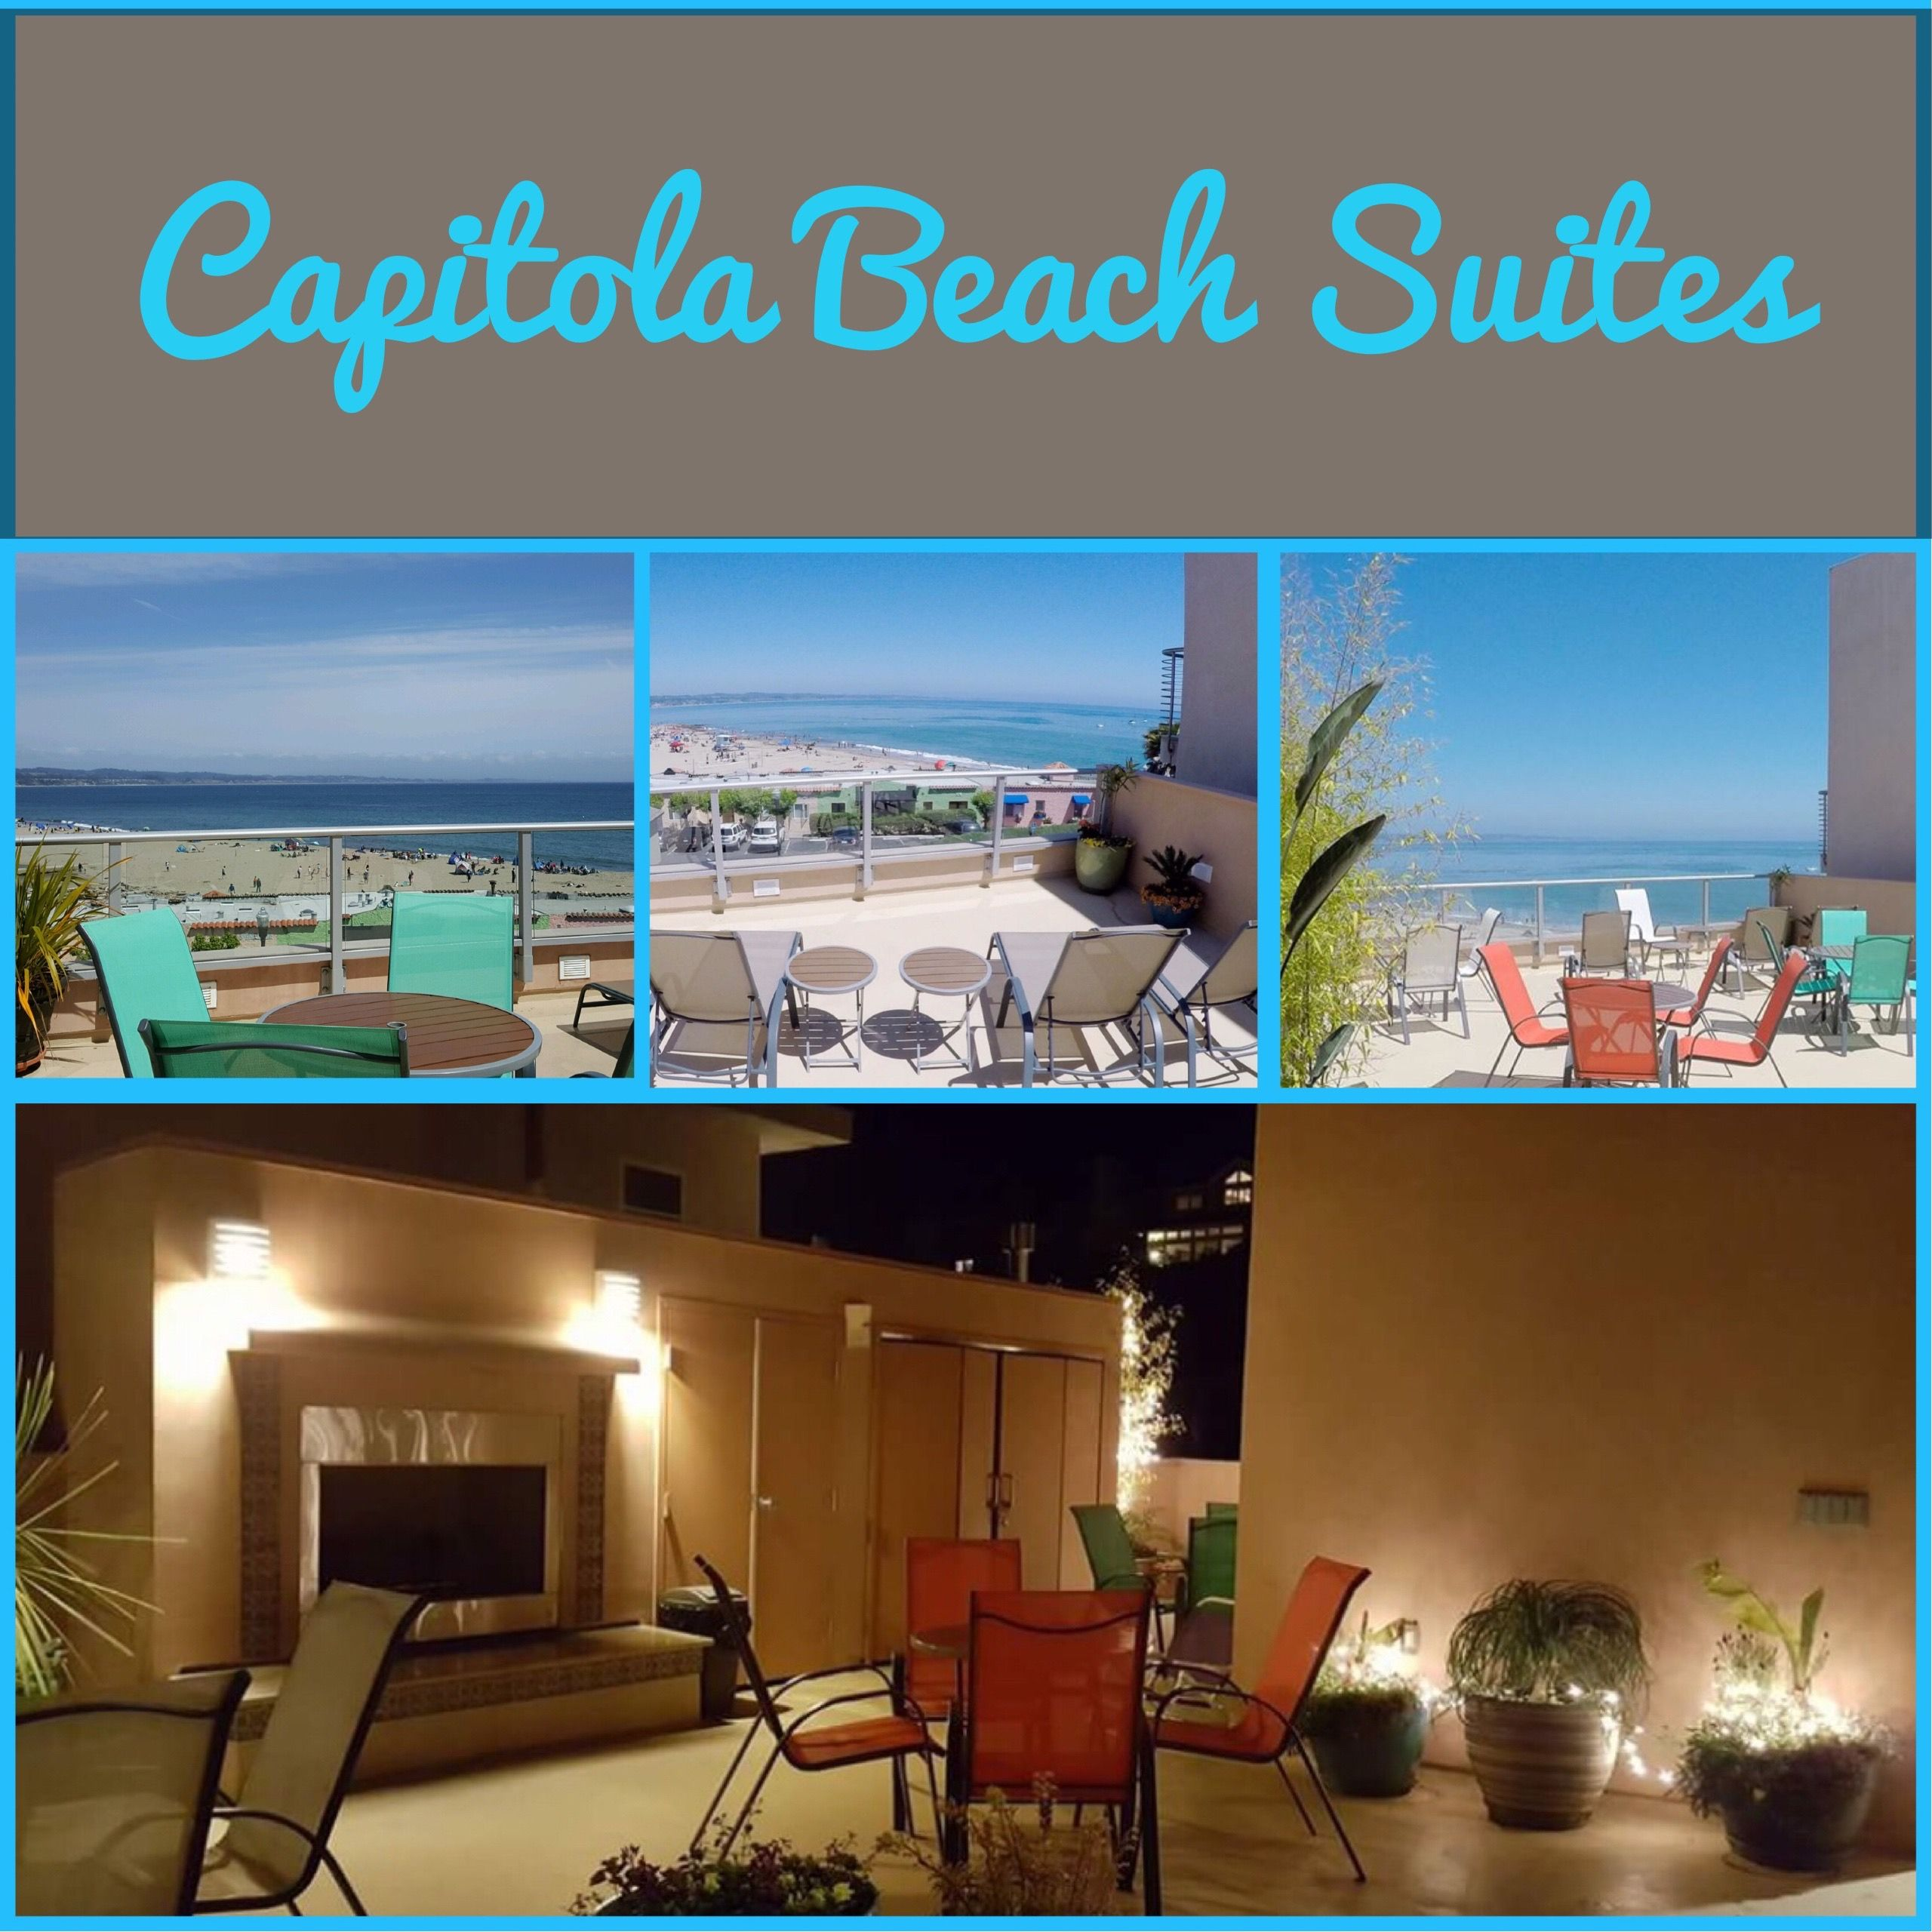 Enjoy The Capitola Beach Suites Roof Top Terrace Complete With A Fireplace And Expansive Views Of Entire Monterey Bay Village